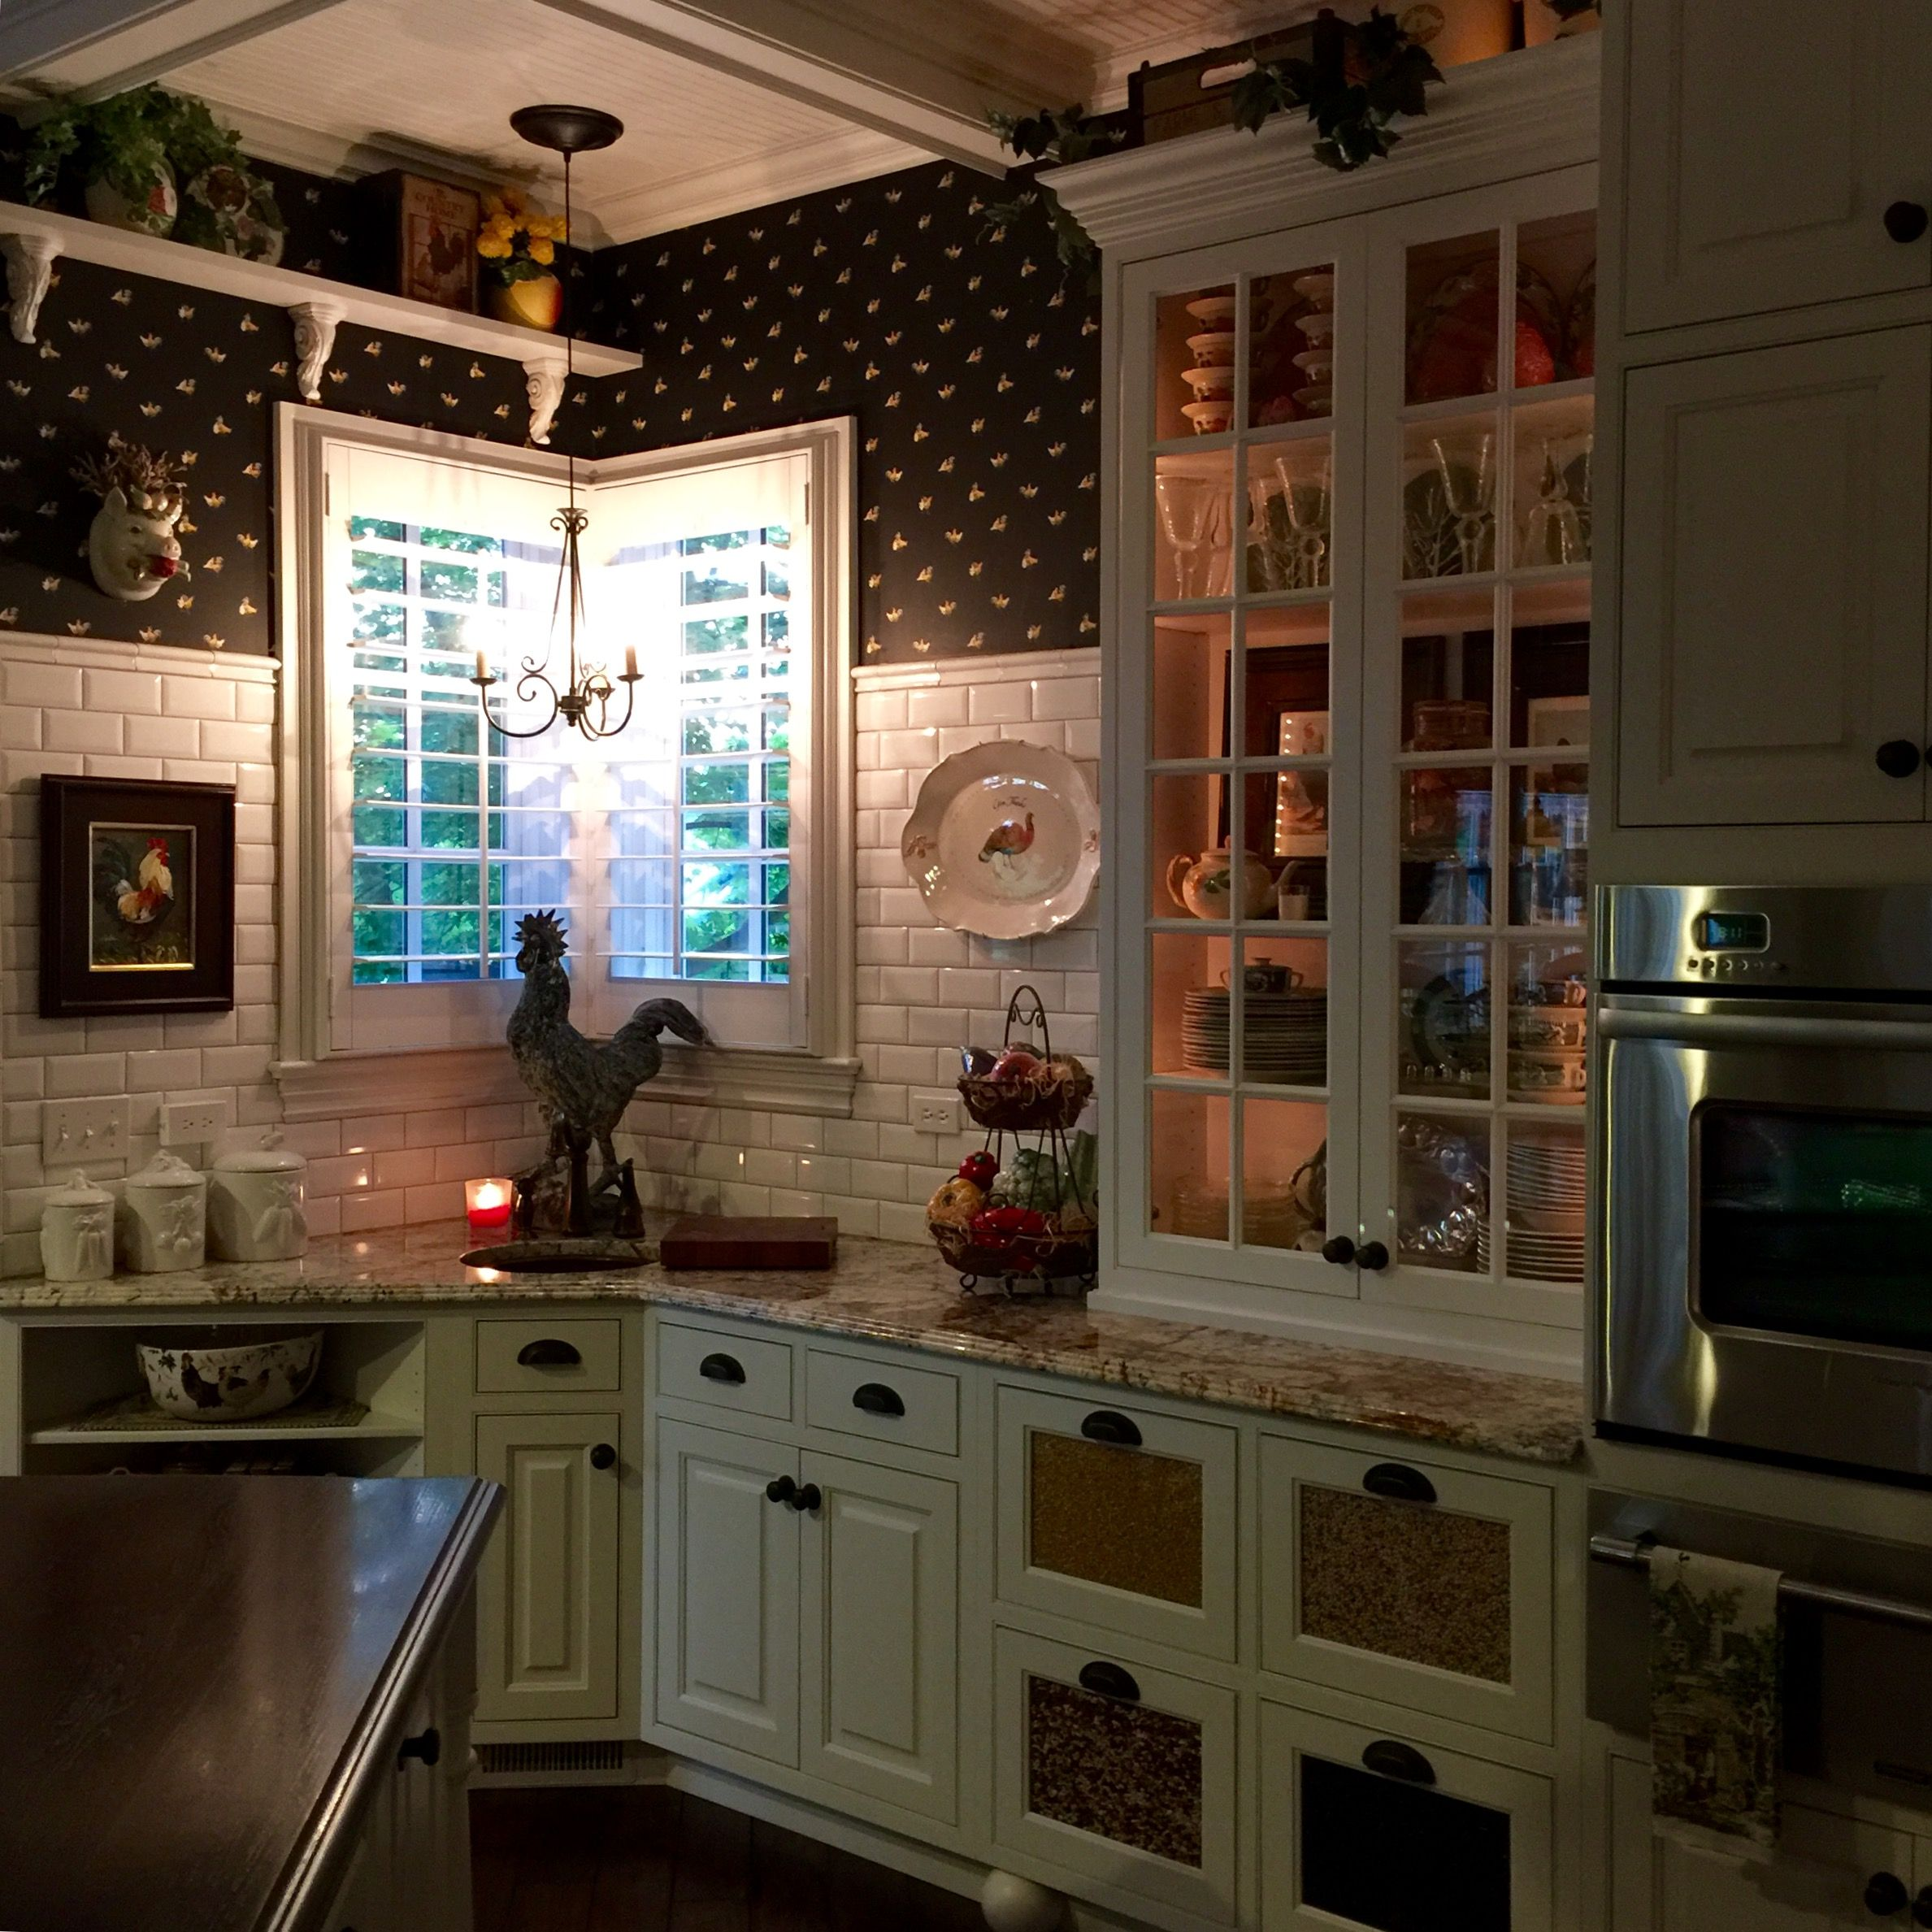 Pin By Kevin Kemp On Klkdzyn Originals Kitchen Home Staging Kitchen Cabinets